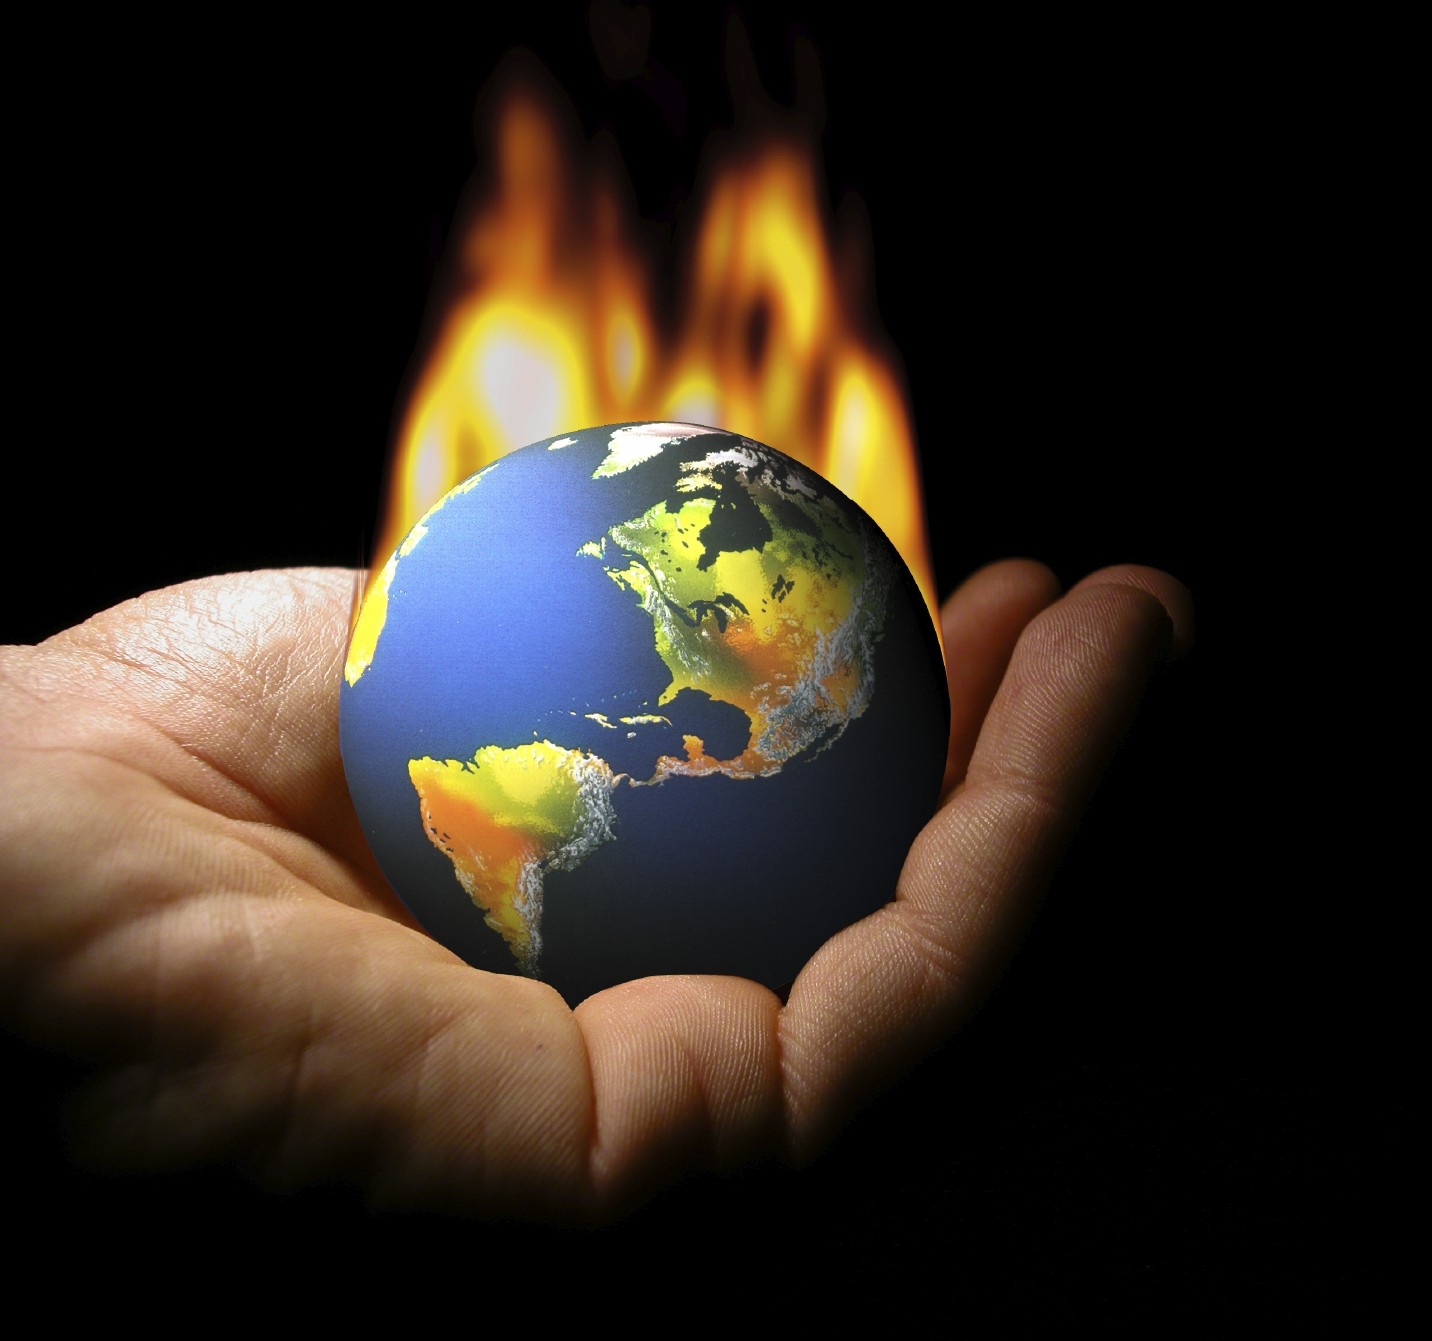 I don't want to set the world on fire...I just want to put a flame in your heart...